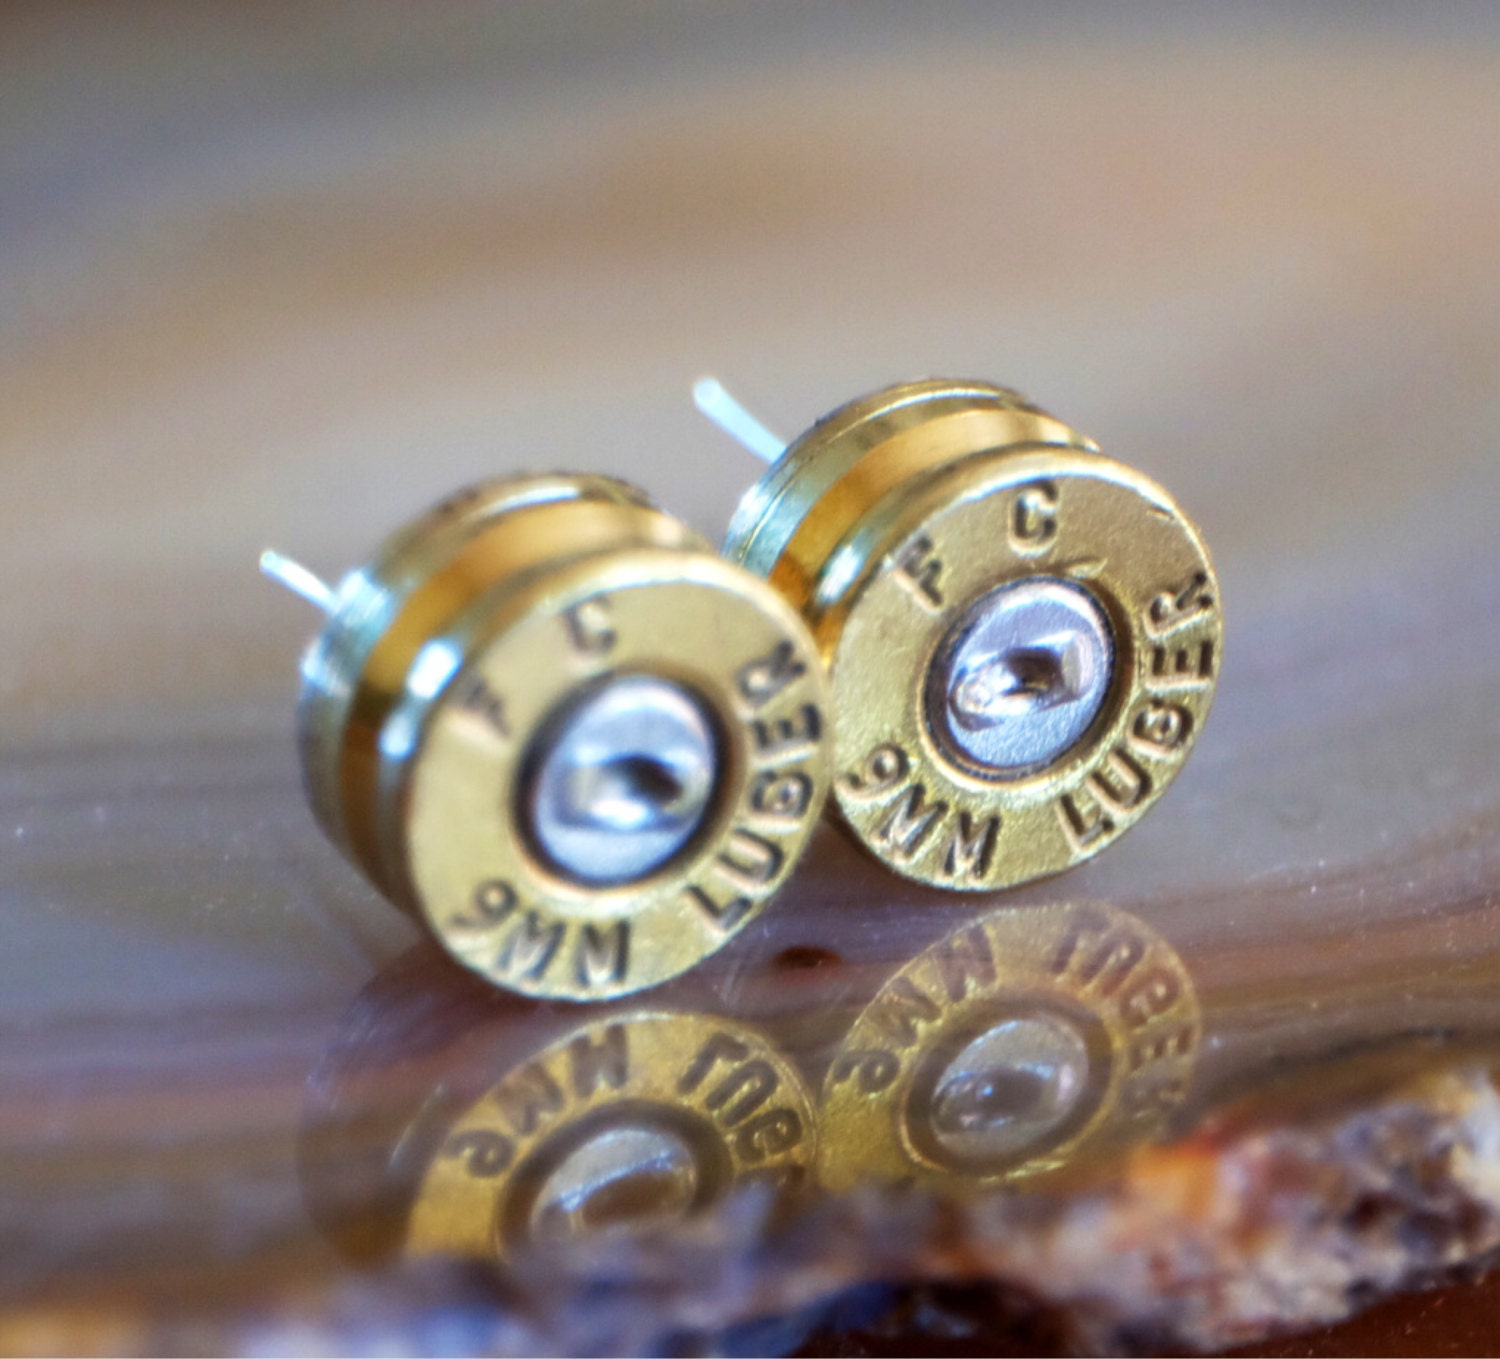 police wedding rings harley davidson wedding rings 9mm Bullet Earring Studs Police Glock Jewelry Cop Wife Ear Ring Stud Camo Wedding Earrings Harley Davidson Camo Ring